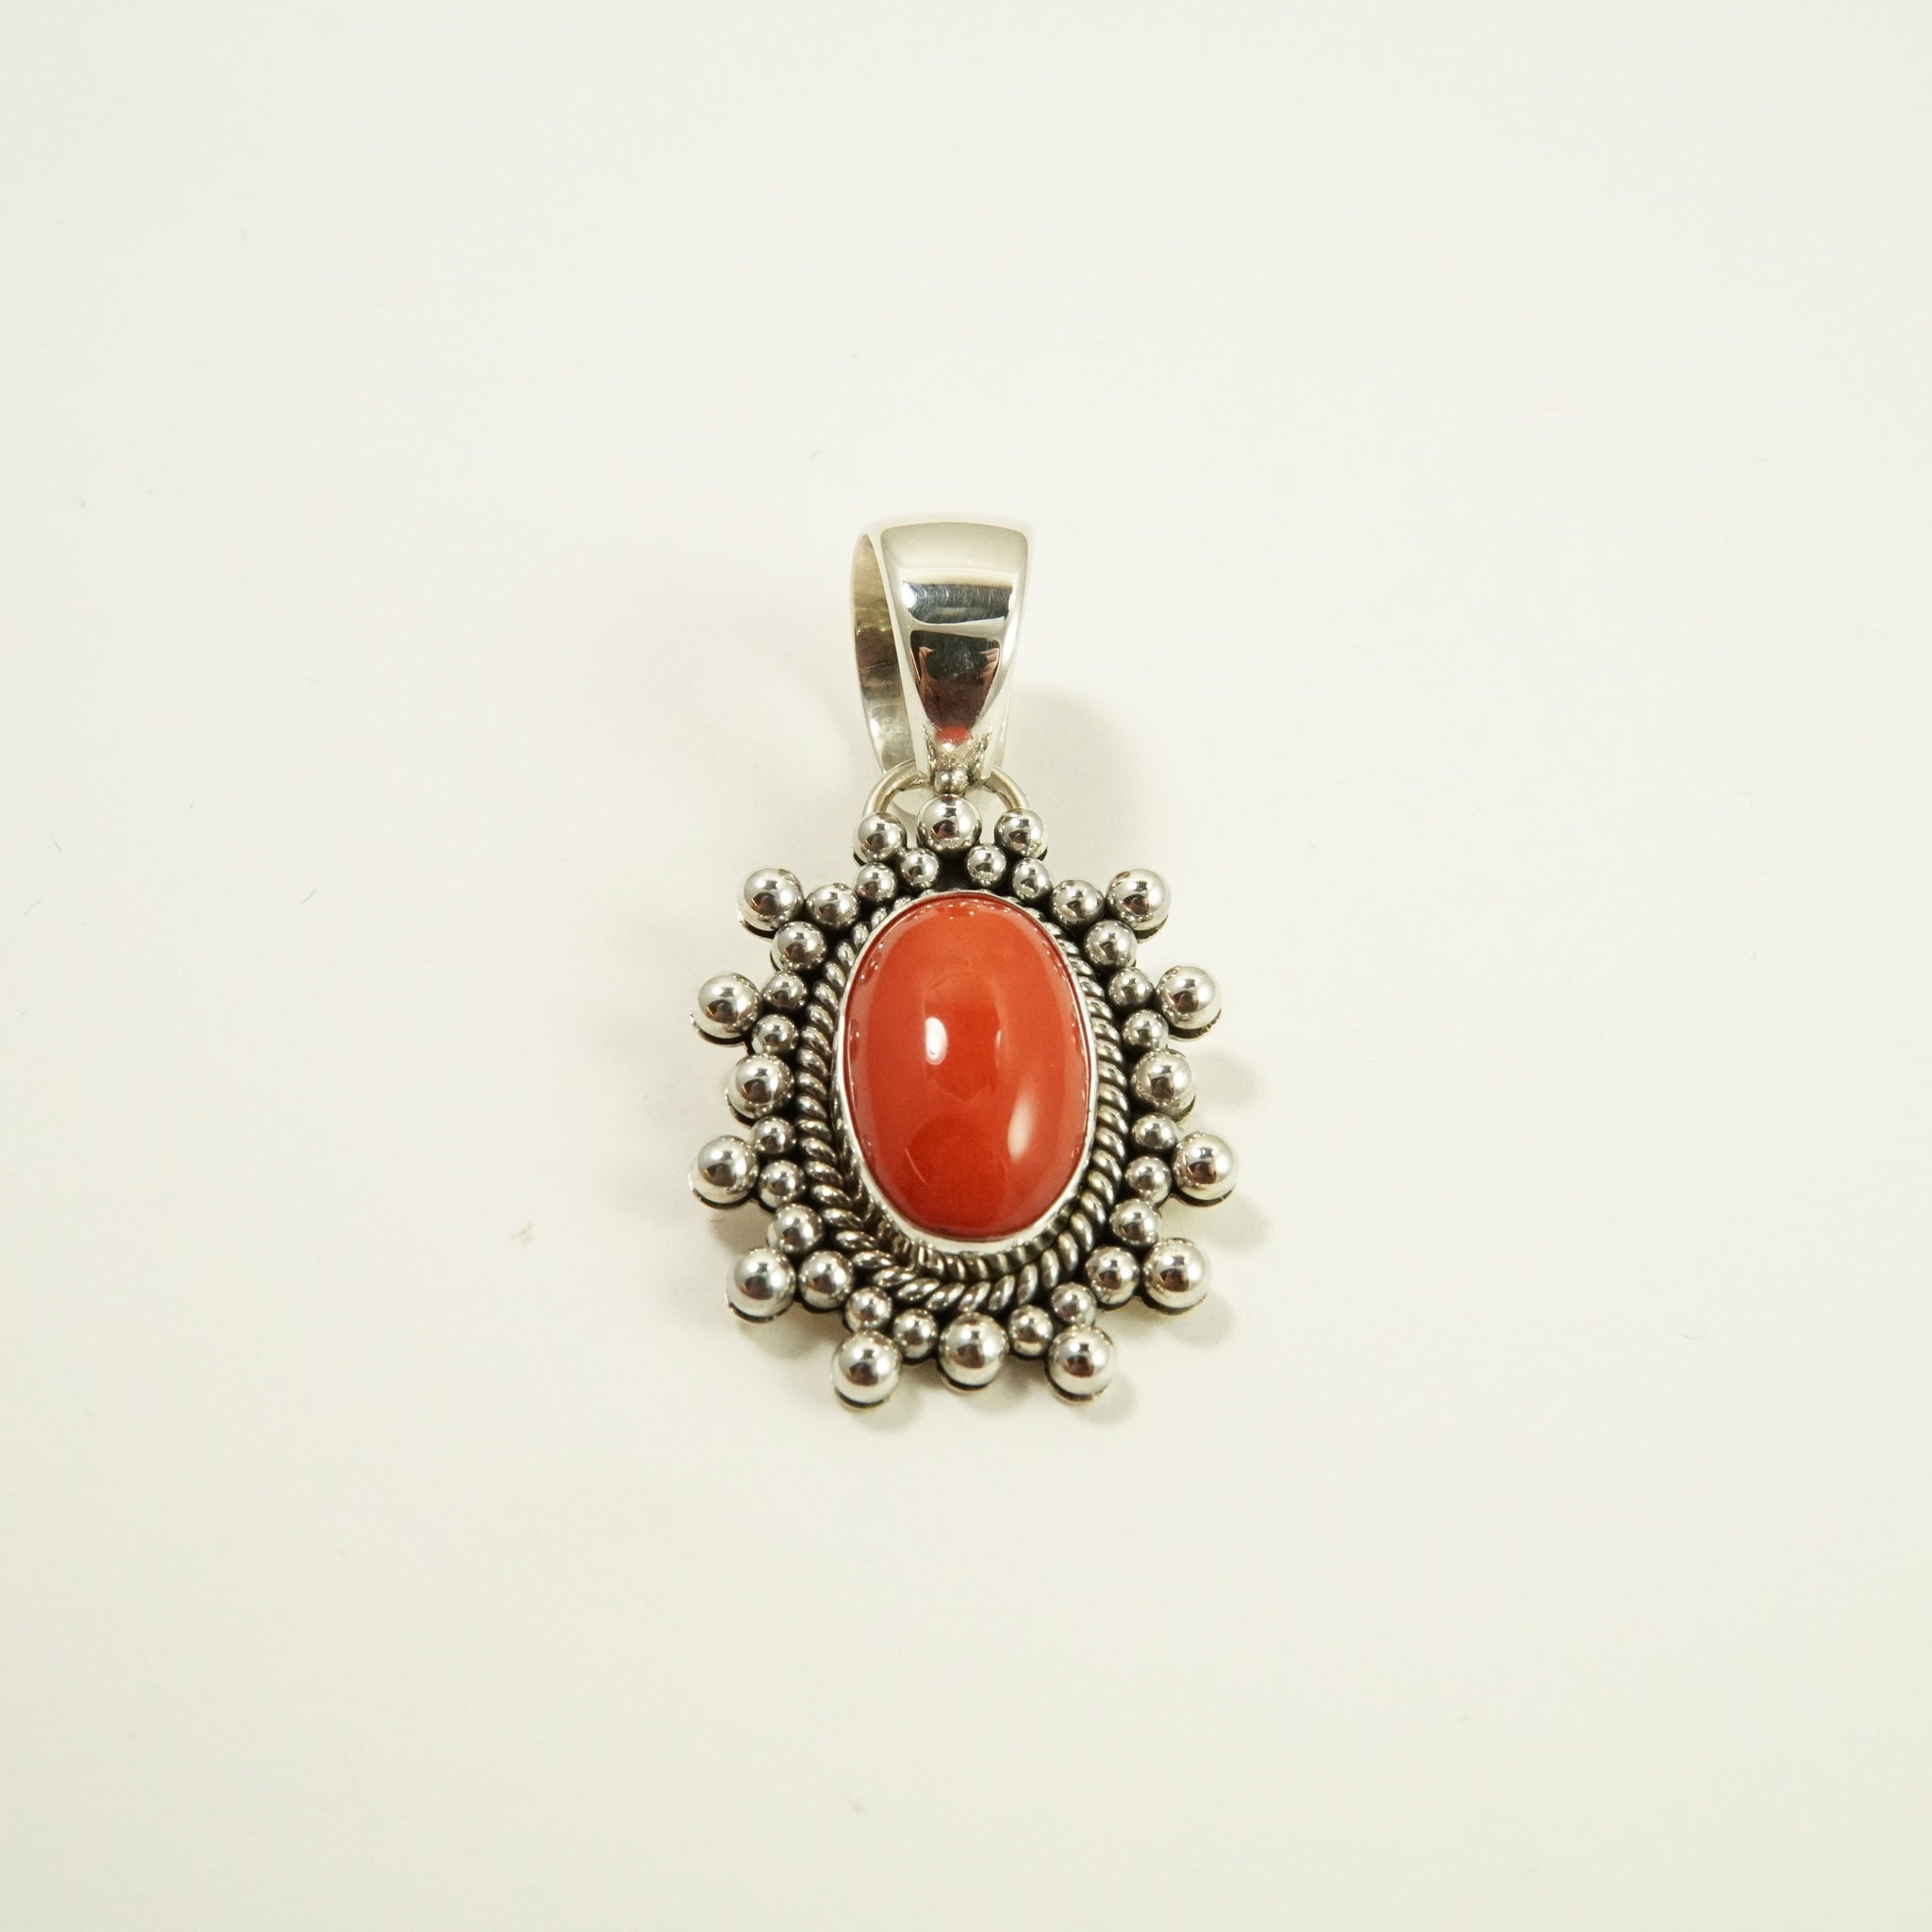 Coral Pendant by Artie Yellowhorse